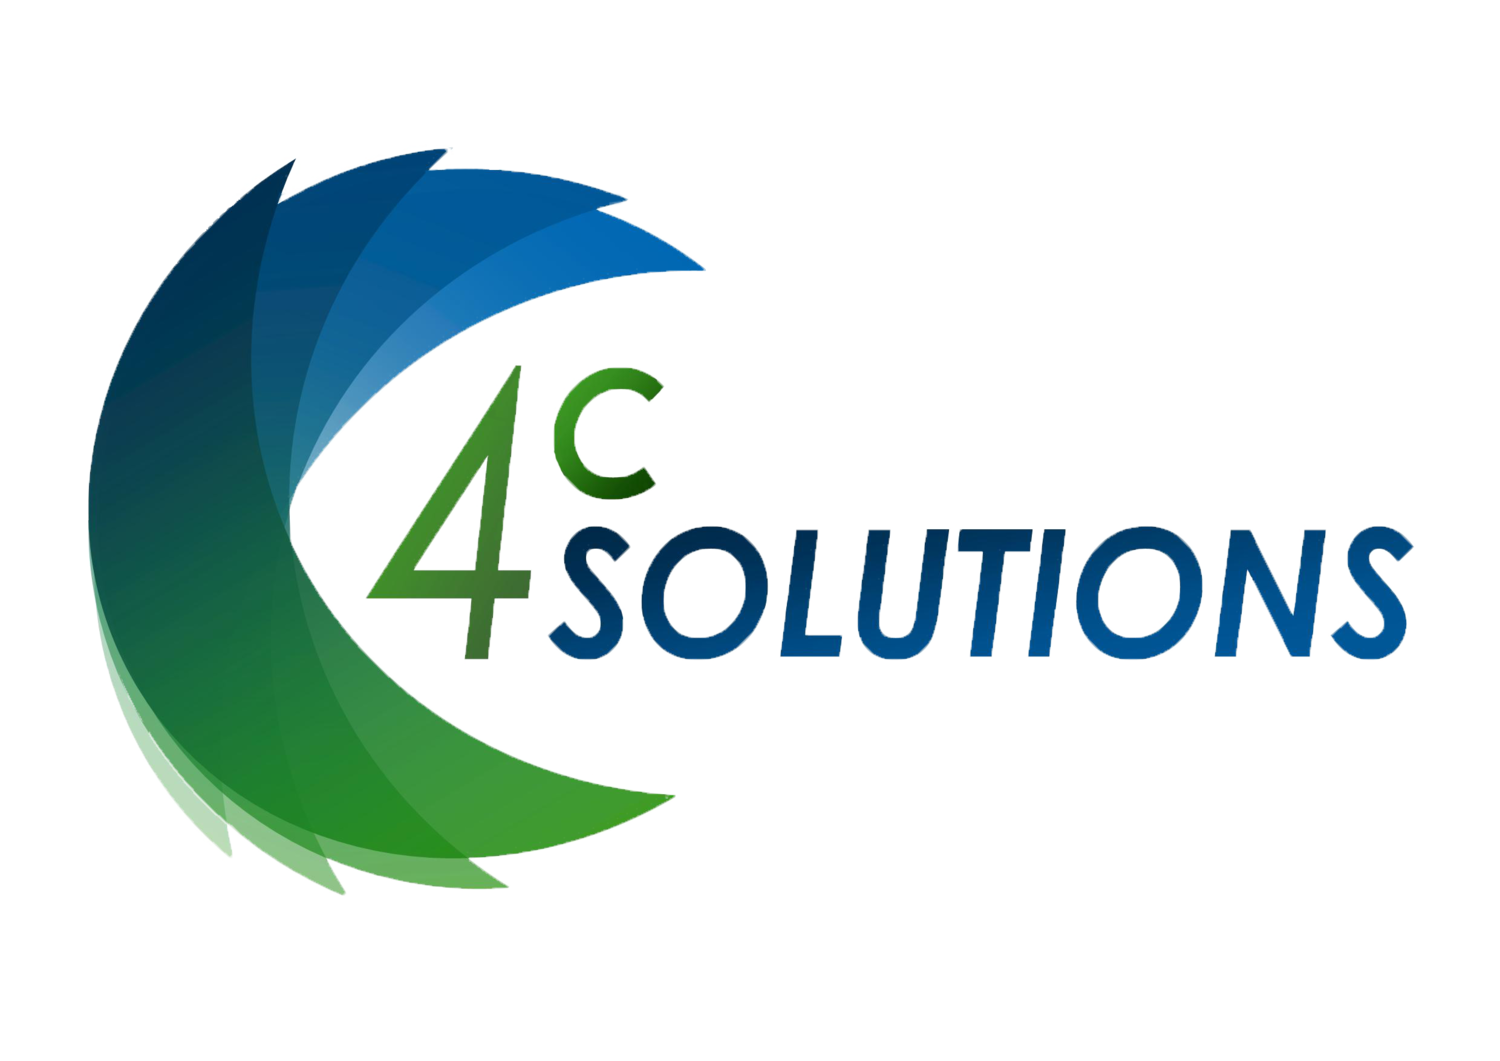 4C Solutions